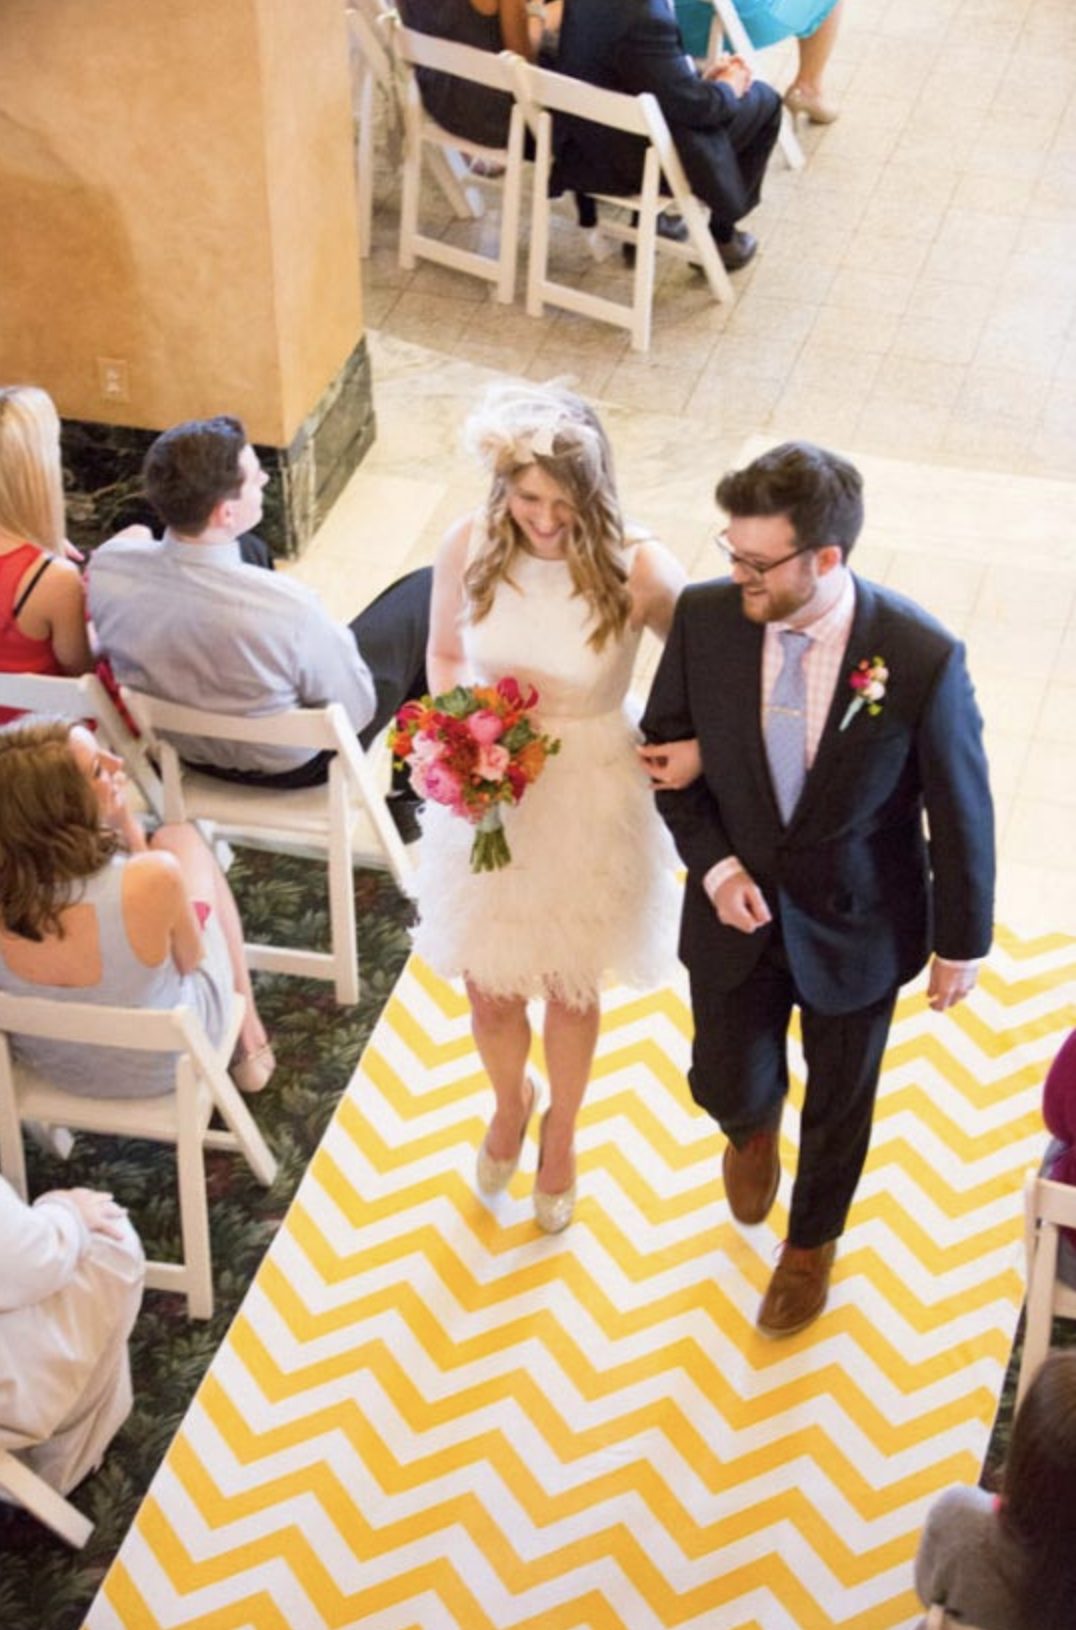 Image of a Geometric pattern wedding aisle runner ideas from forthefloorandmore.com